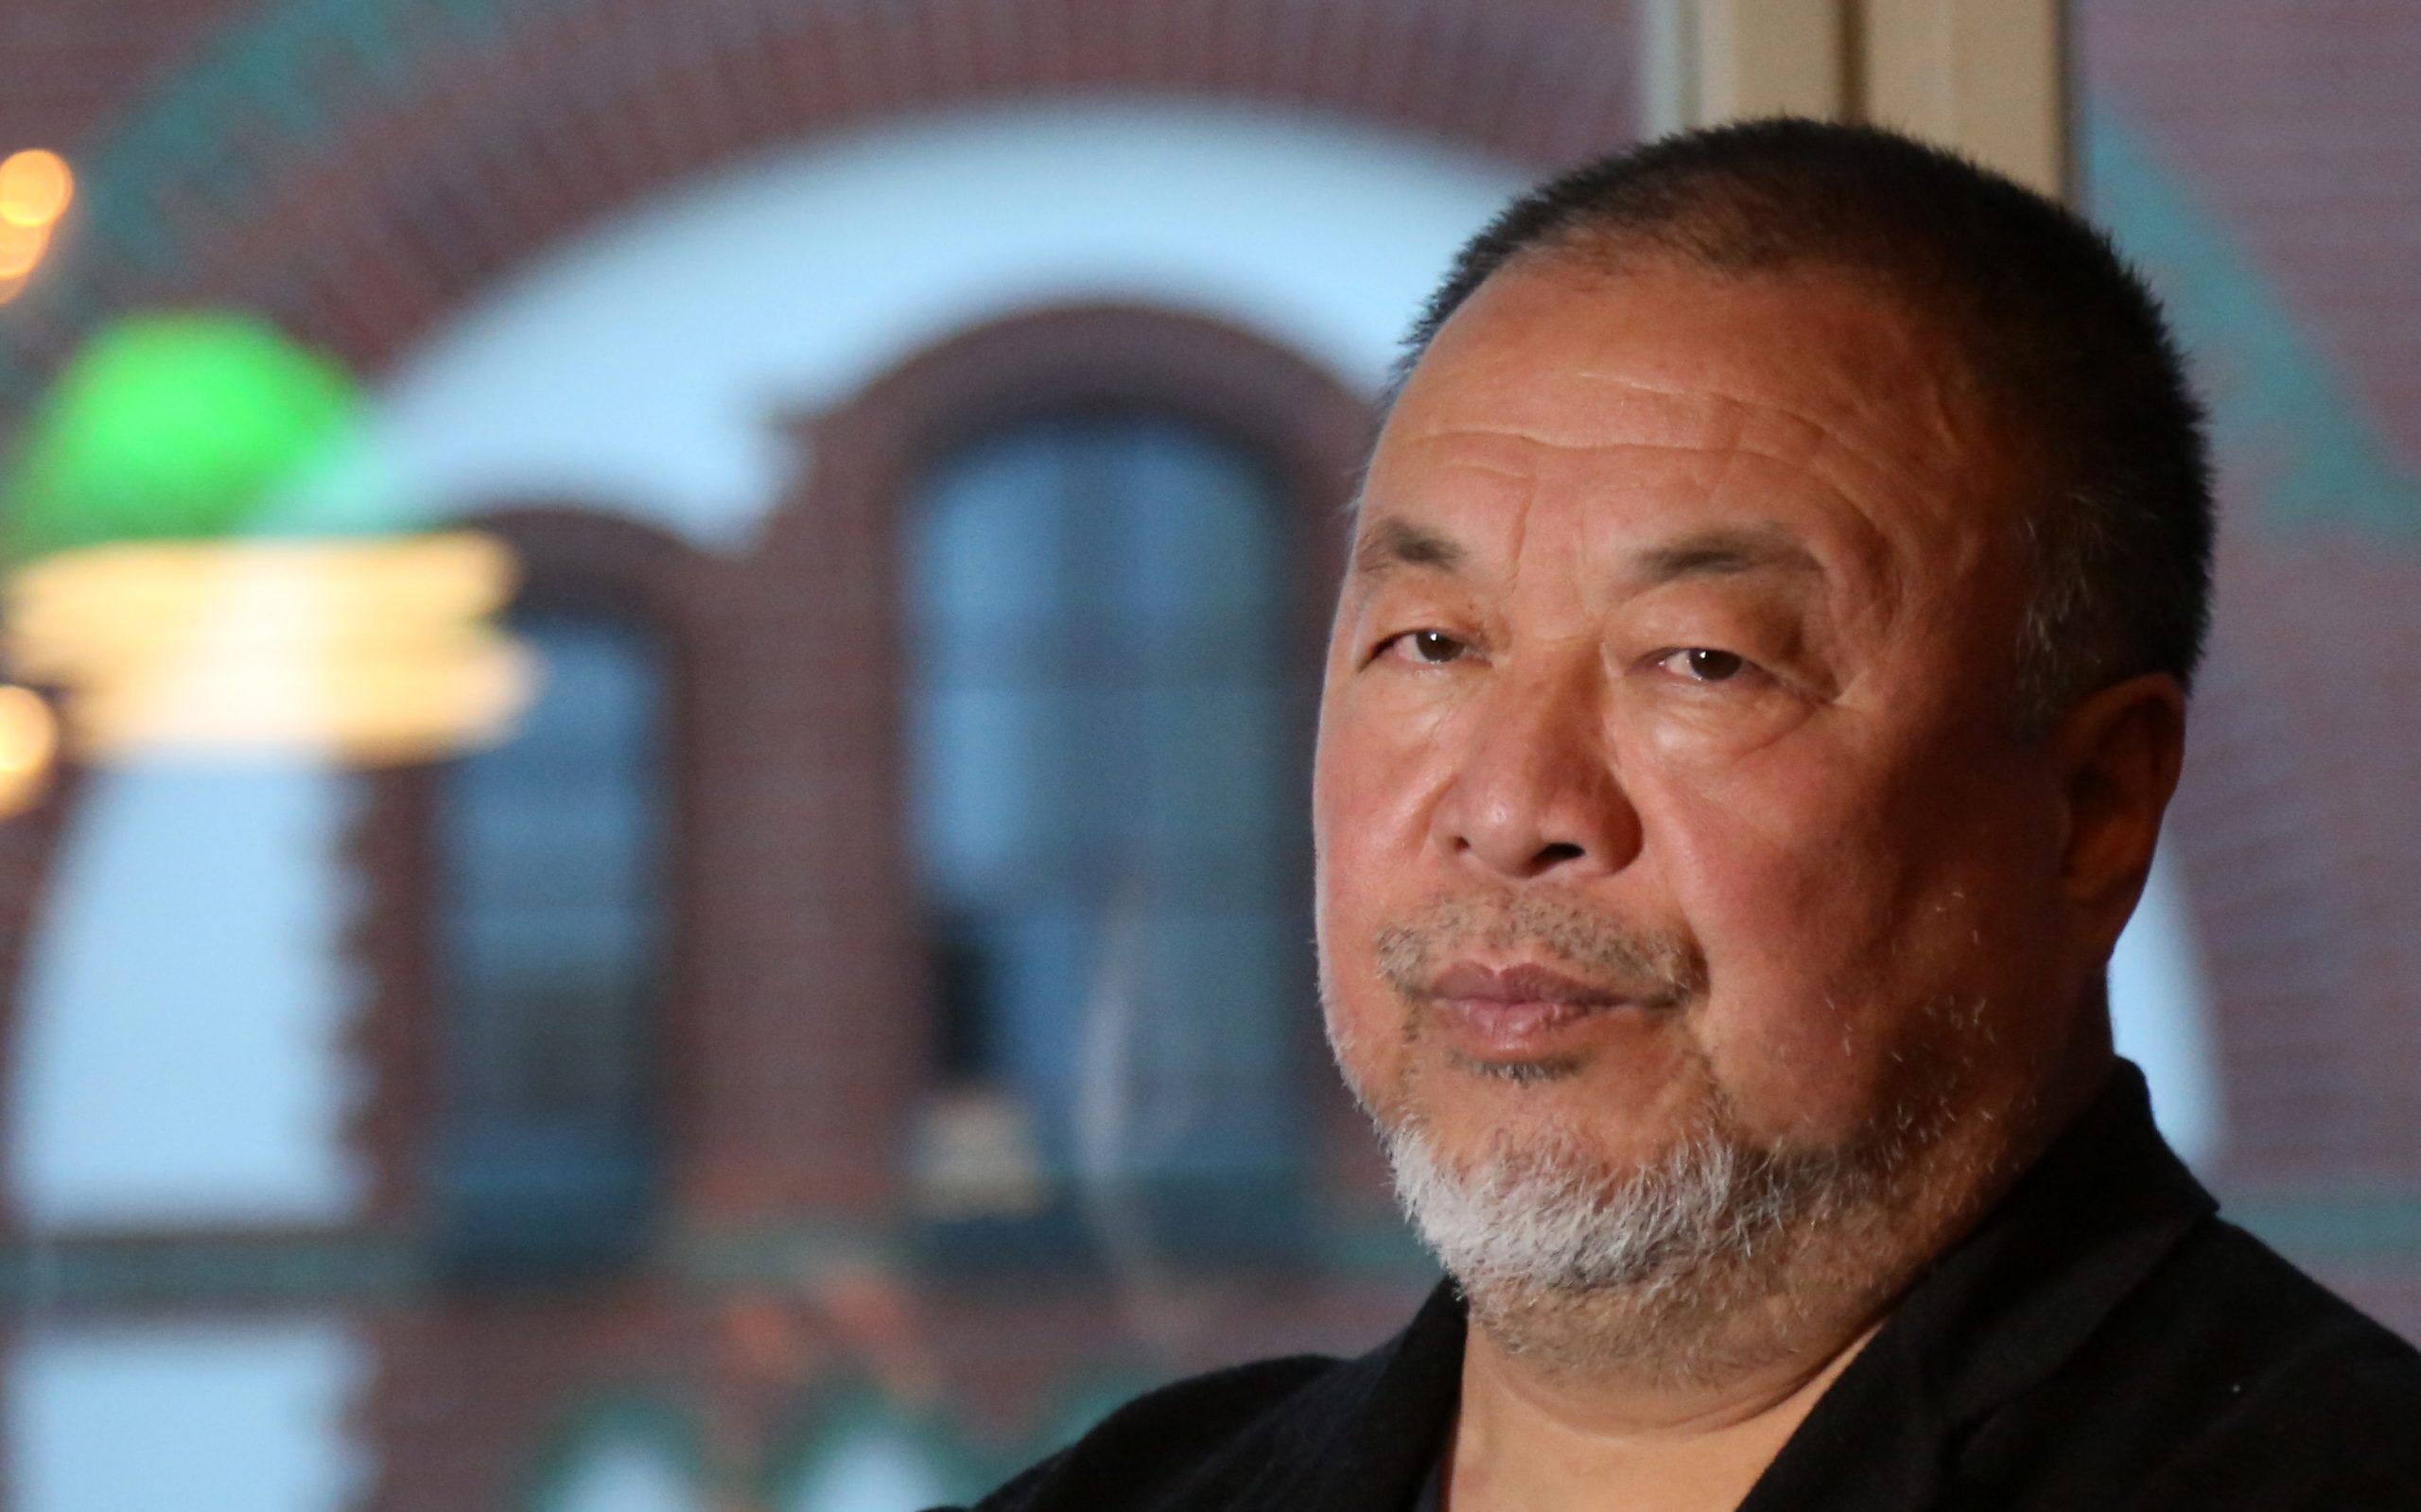 Dissident Artist Ai Weiwei Will Release a Memoir About His Father's Exile From China, and His Own Detainment